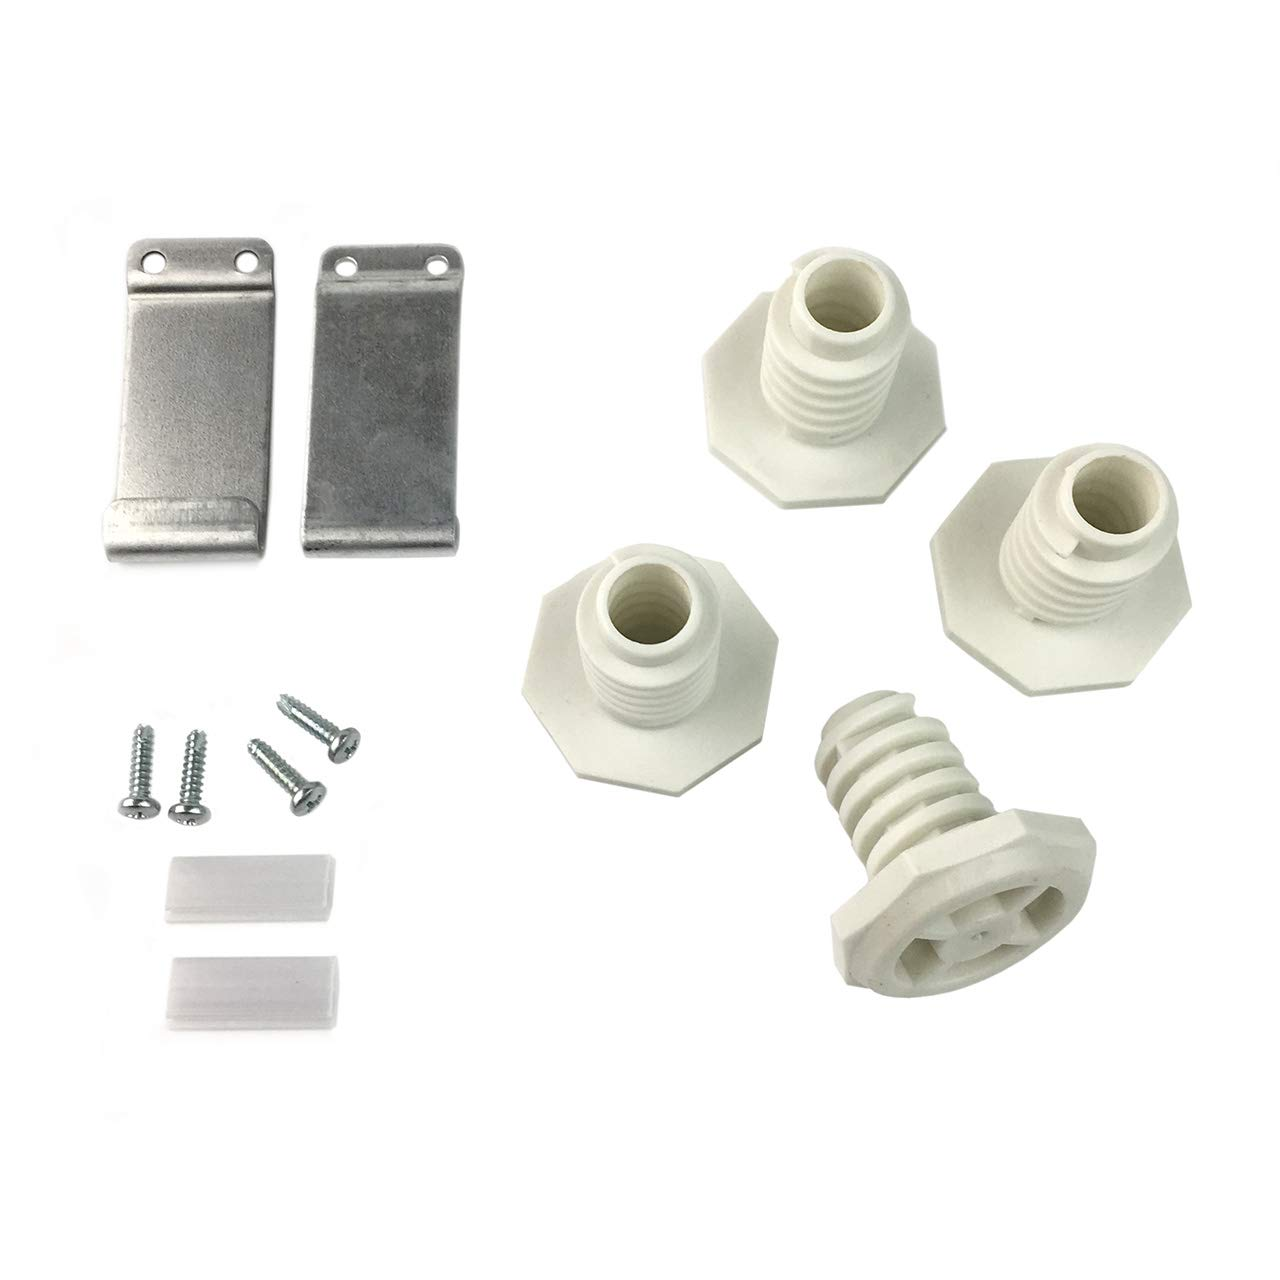 Ximoon W10869845 Stack Kit for Whirlpool Standard and Long Vent Dryer W10298318RP 1862761, 52774, AH3407625